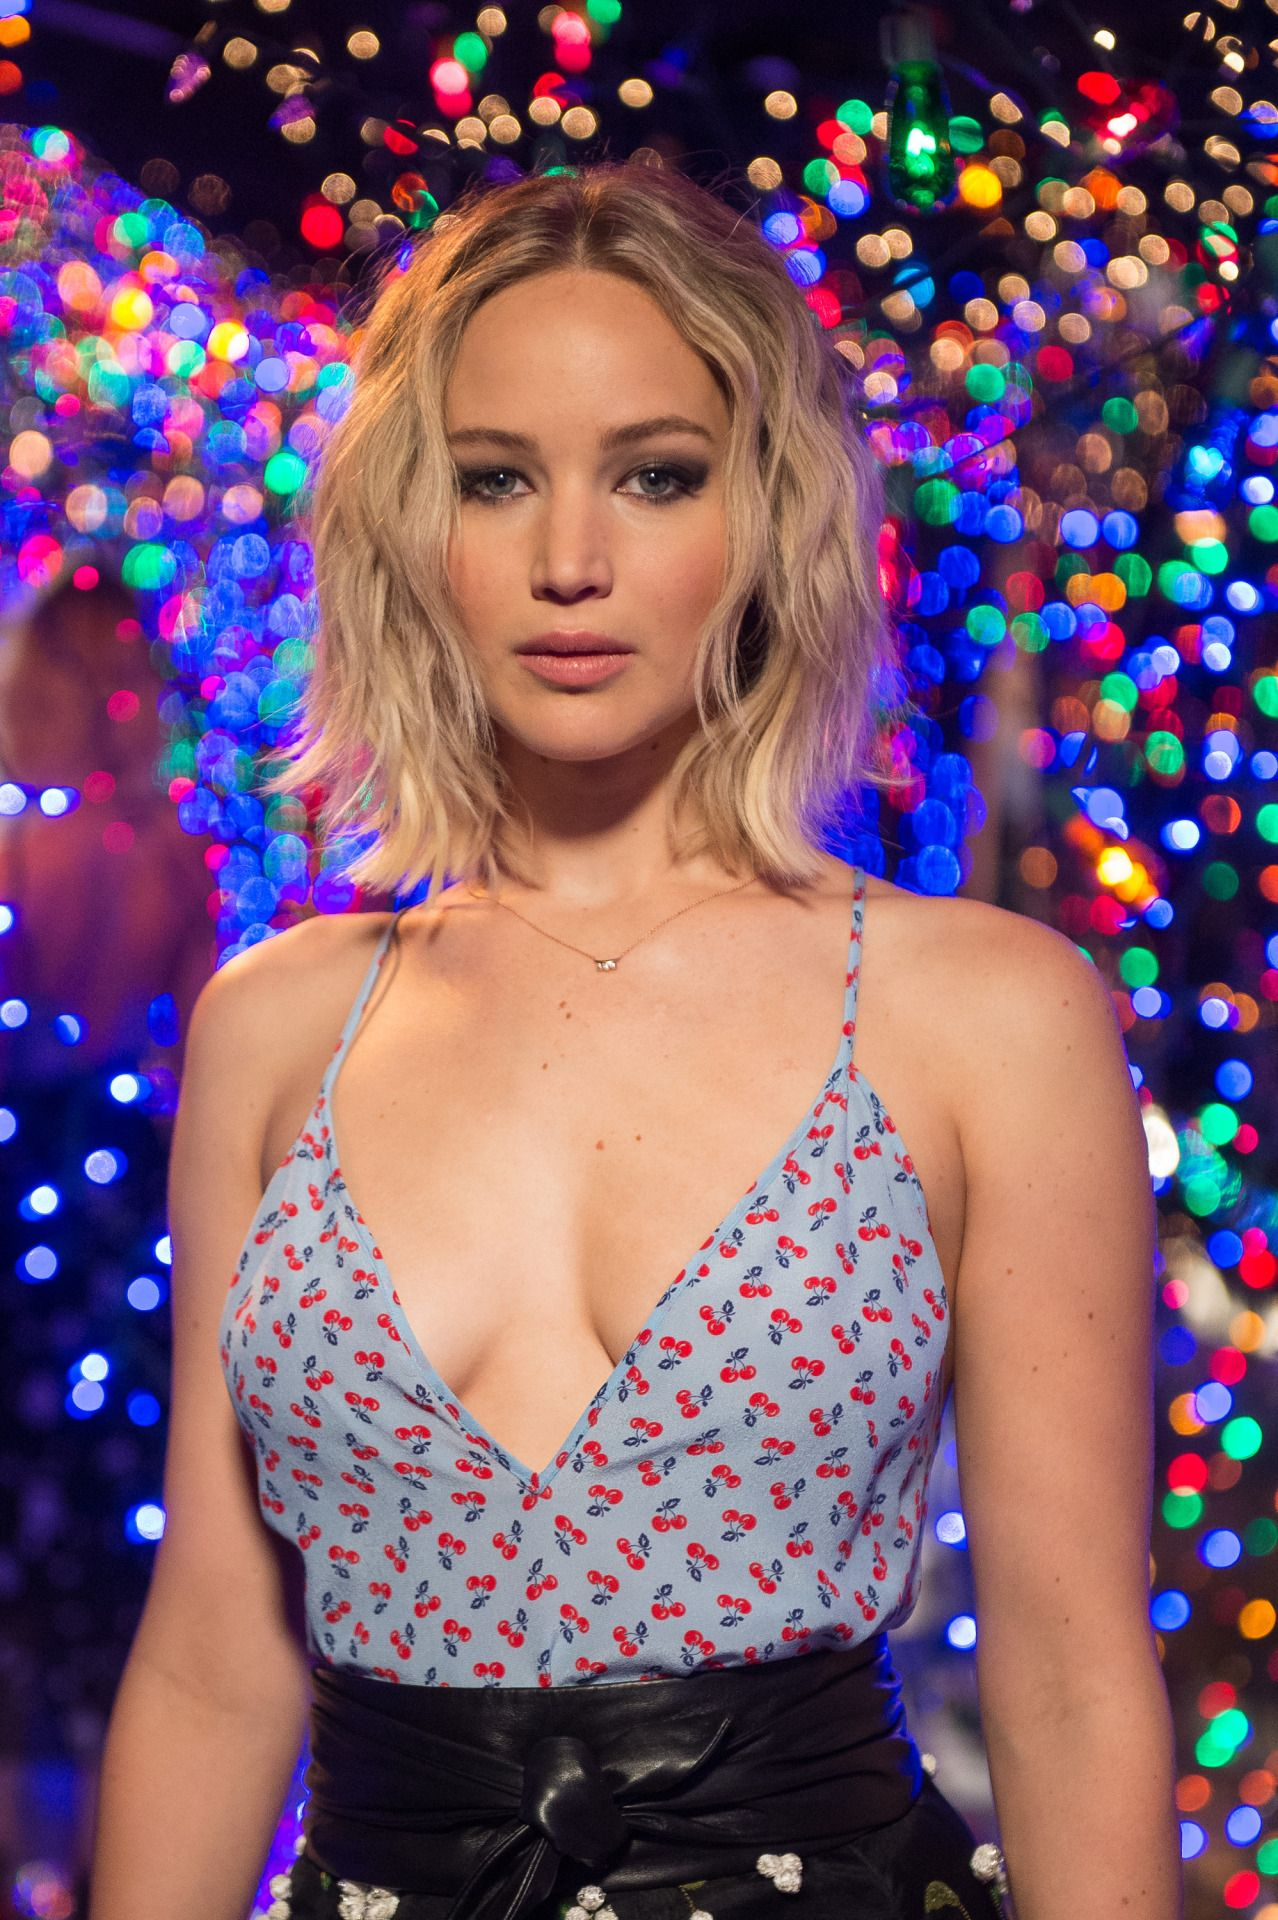 cameltoe Cleavage Jennifer Lawrence naked photo 2017